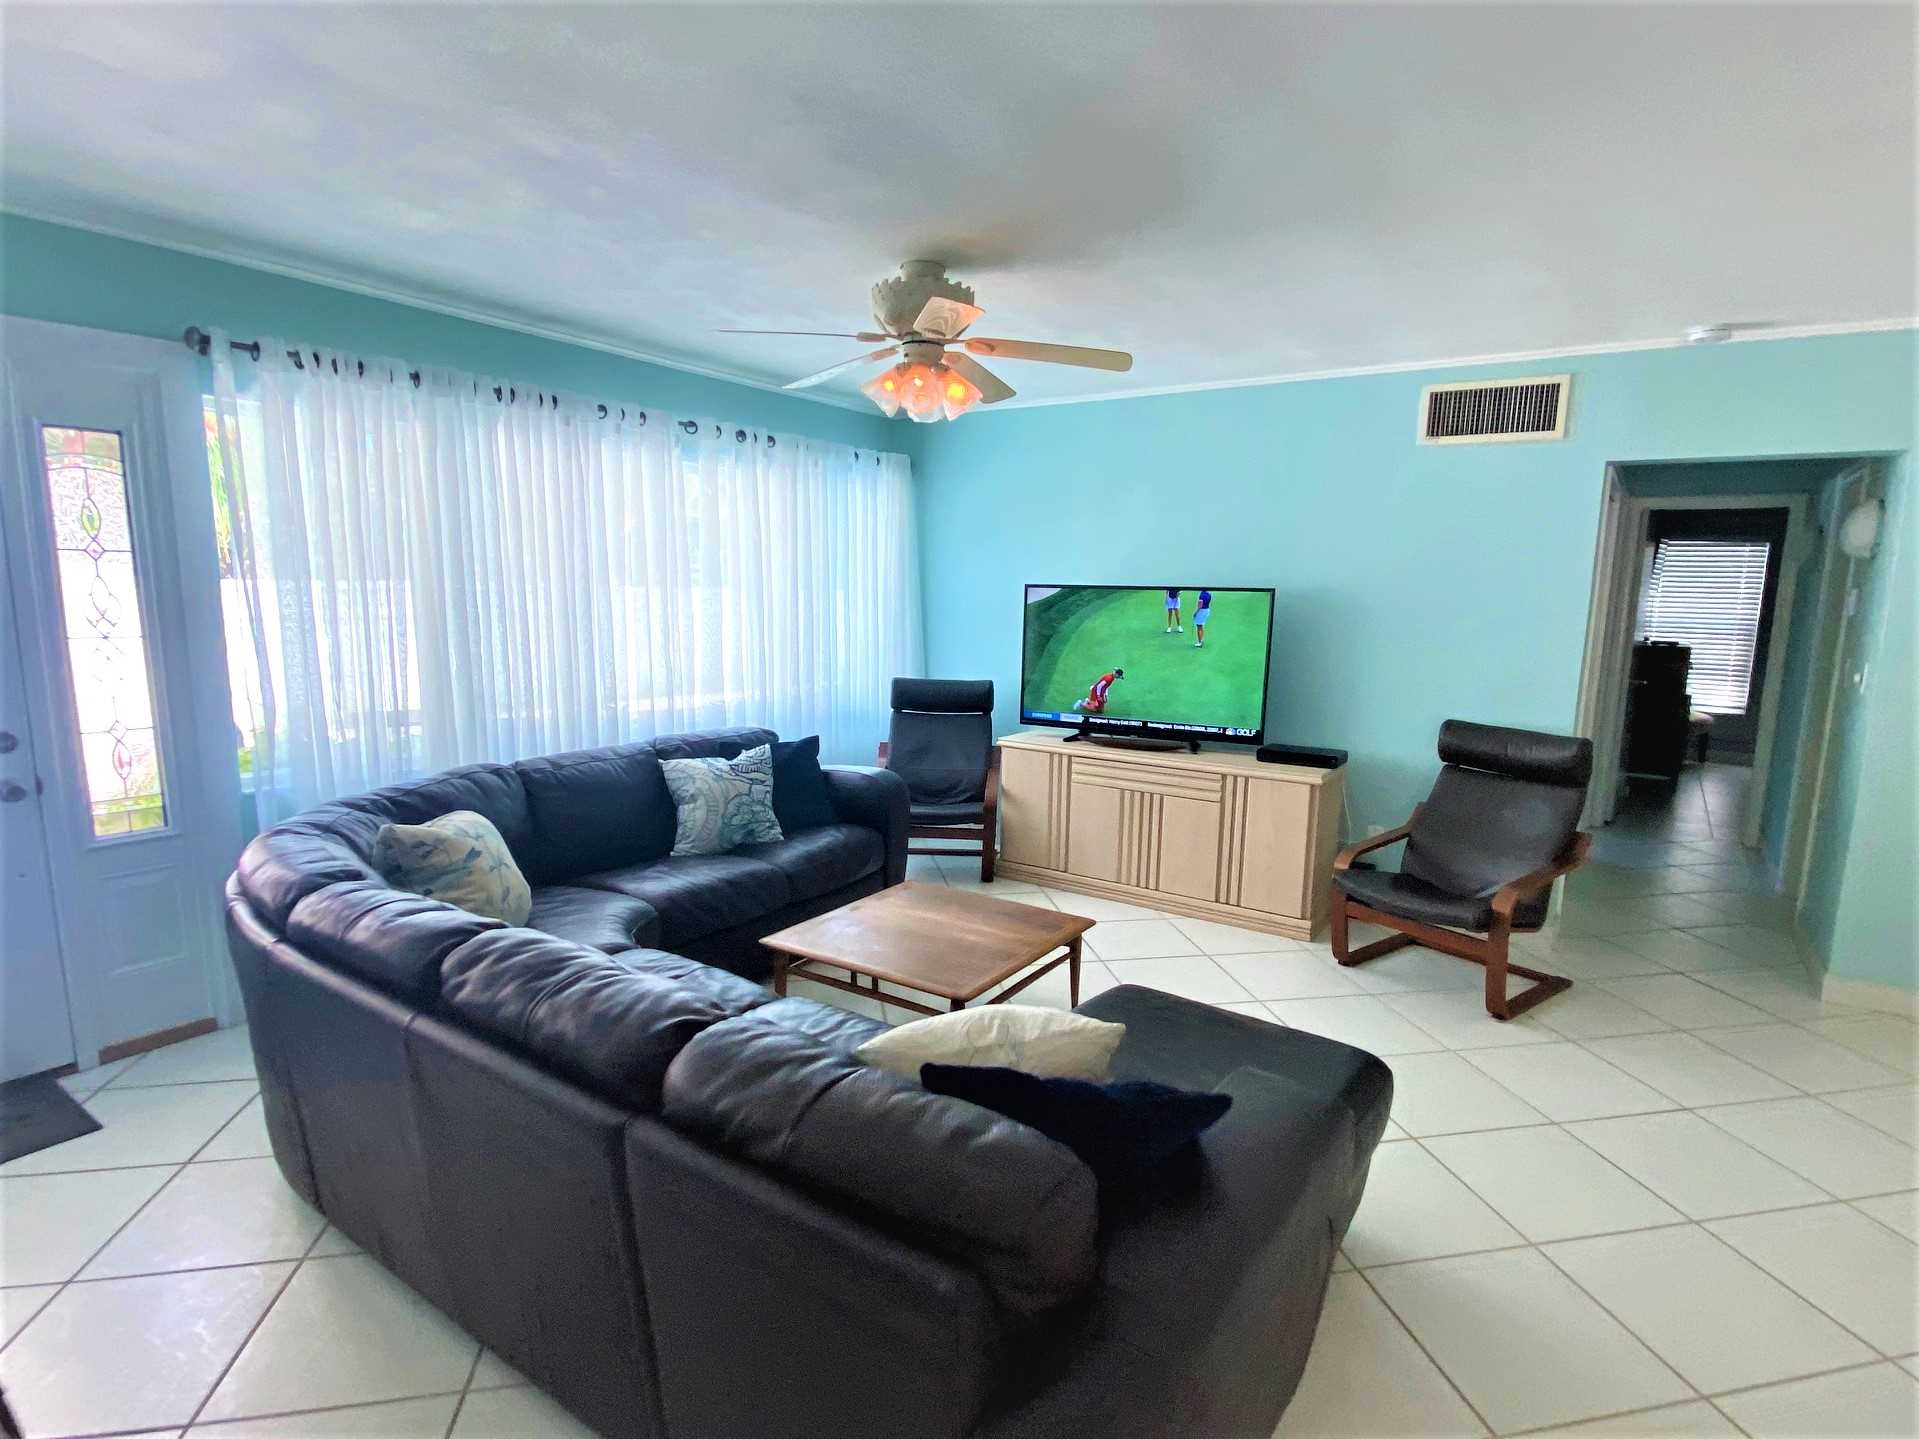 The living area features a big screen HDTV with Xfinity Comc